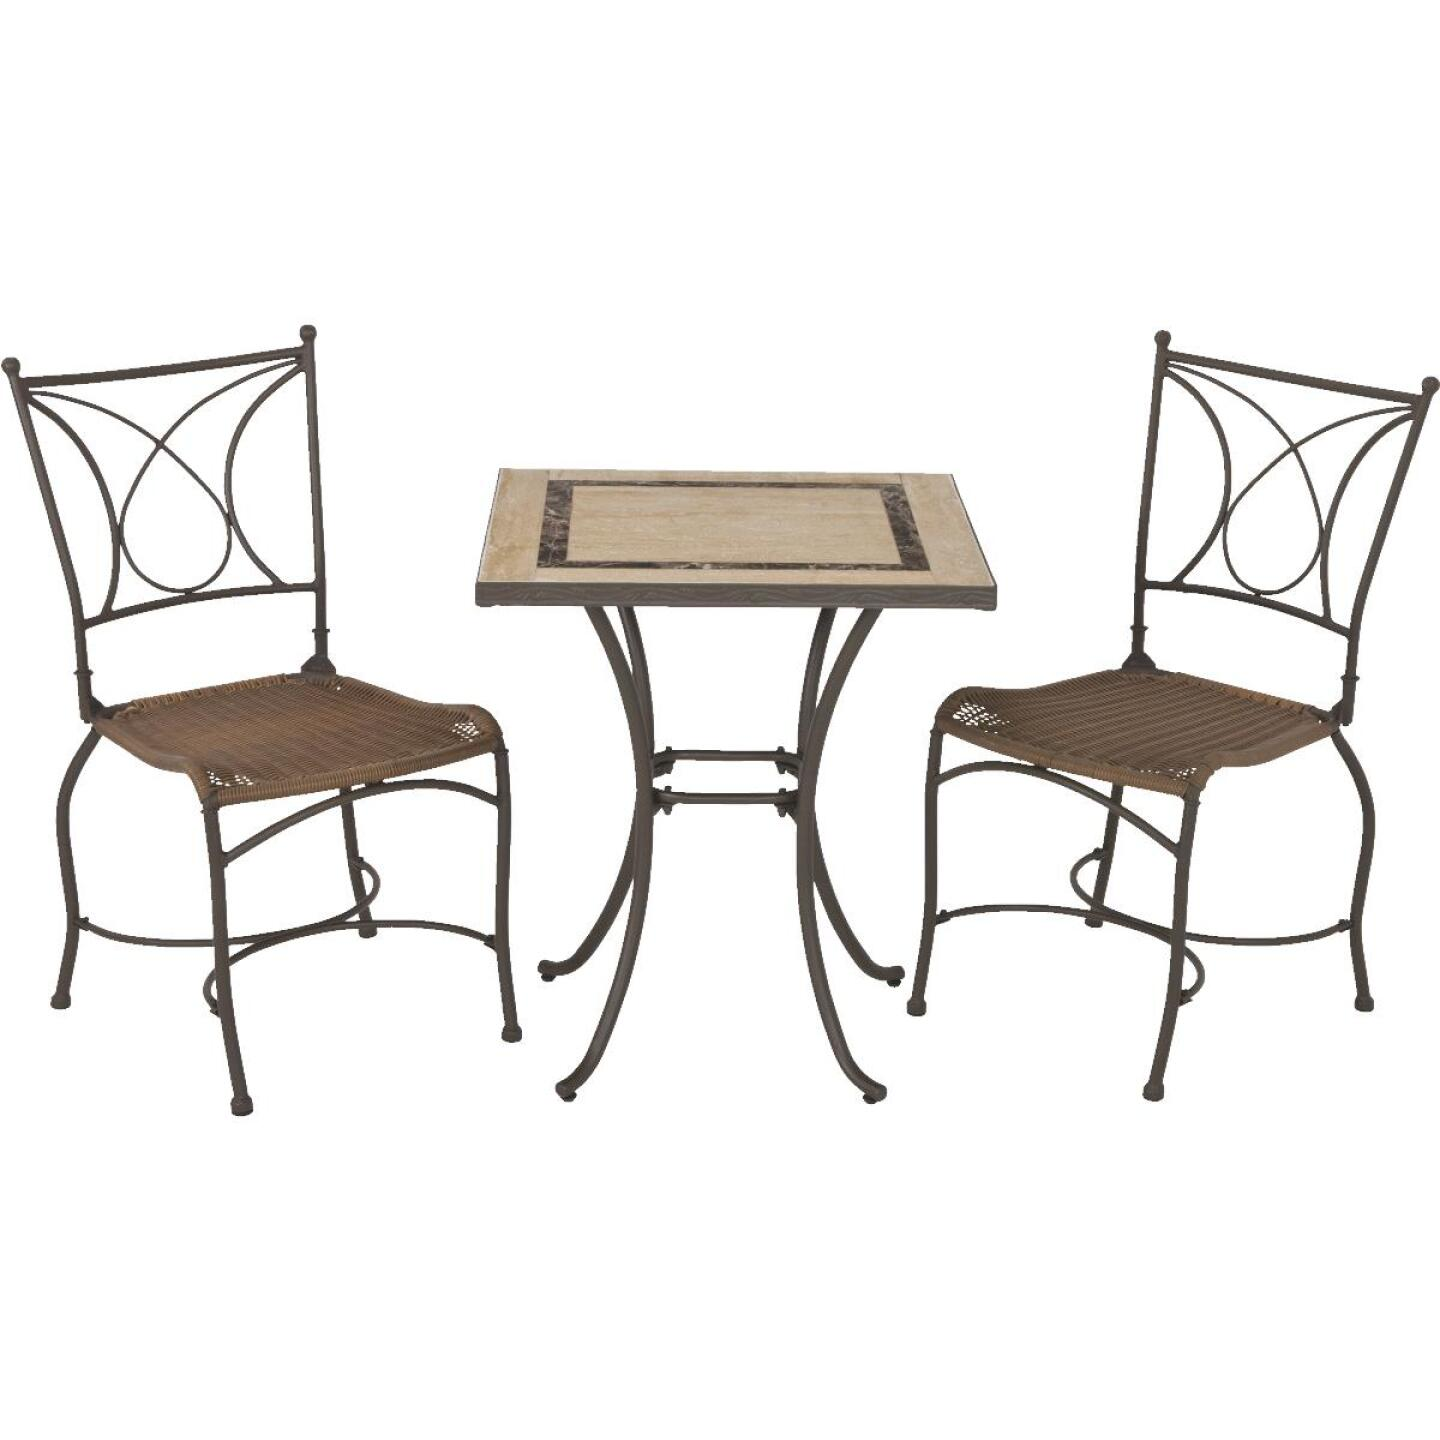 Florence 3-Piece Bistro Set with Wicker Seats Image 12